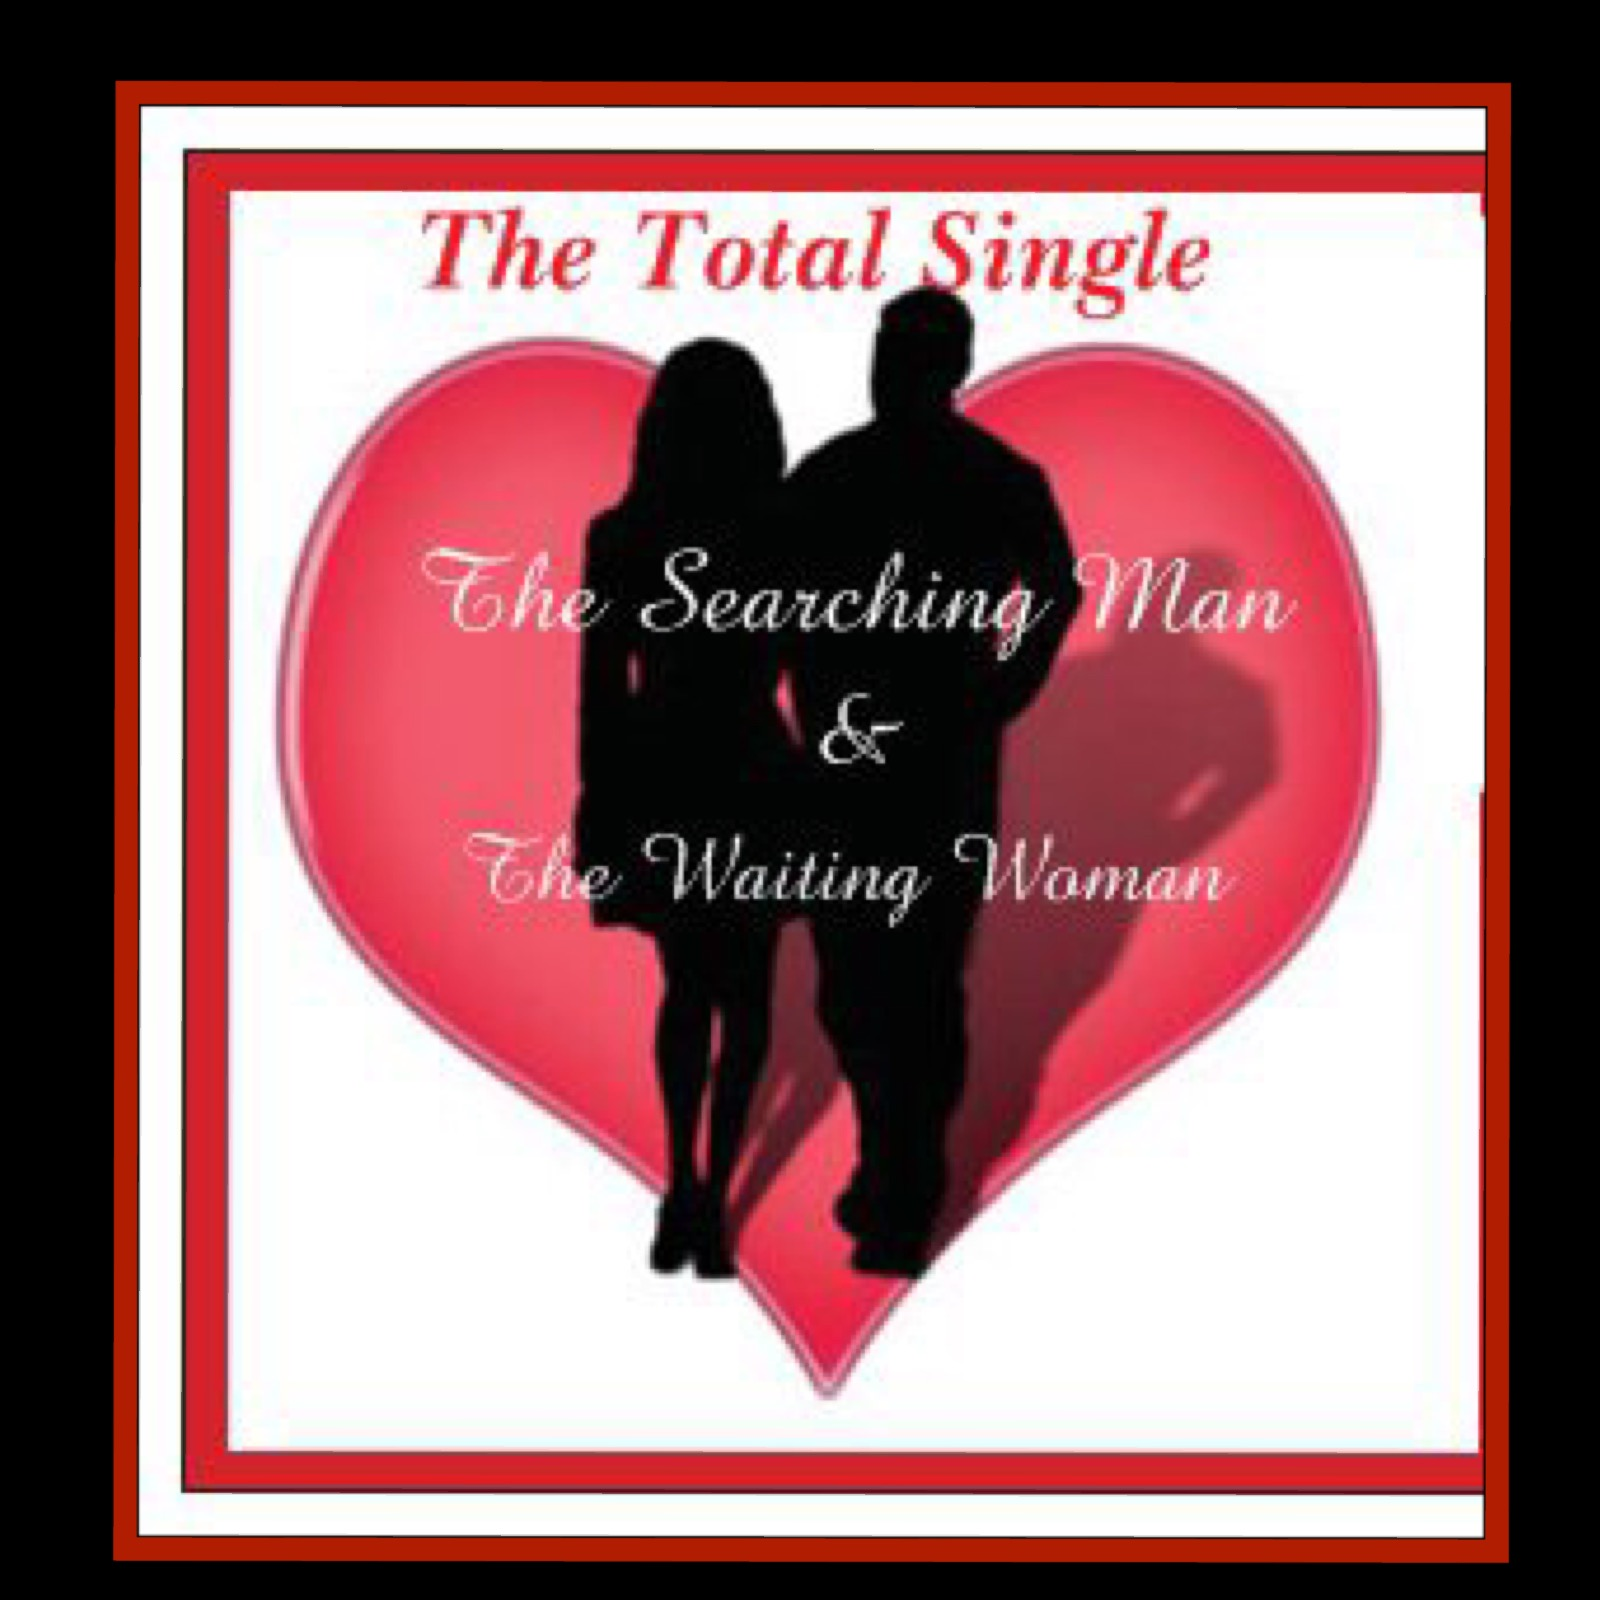 The Total Single